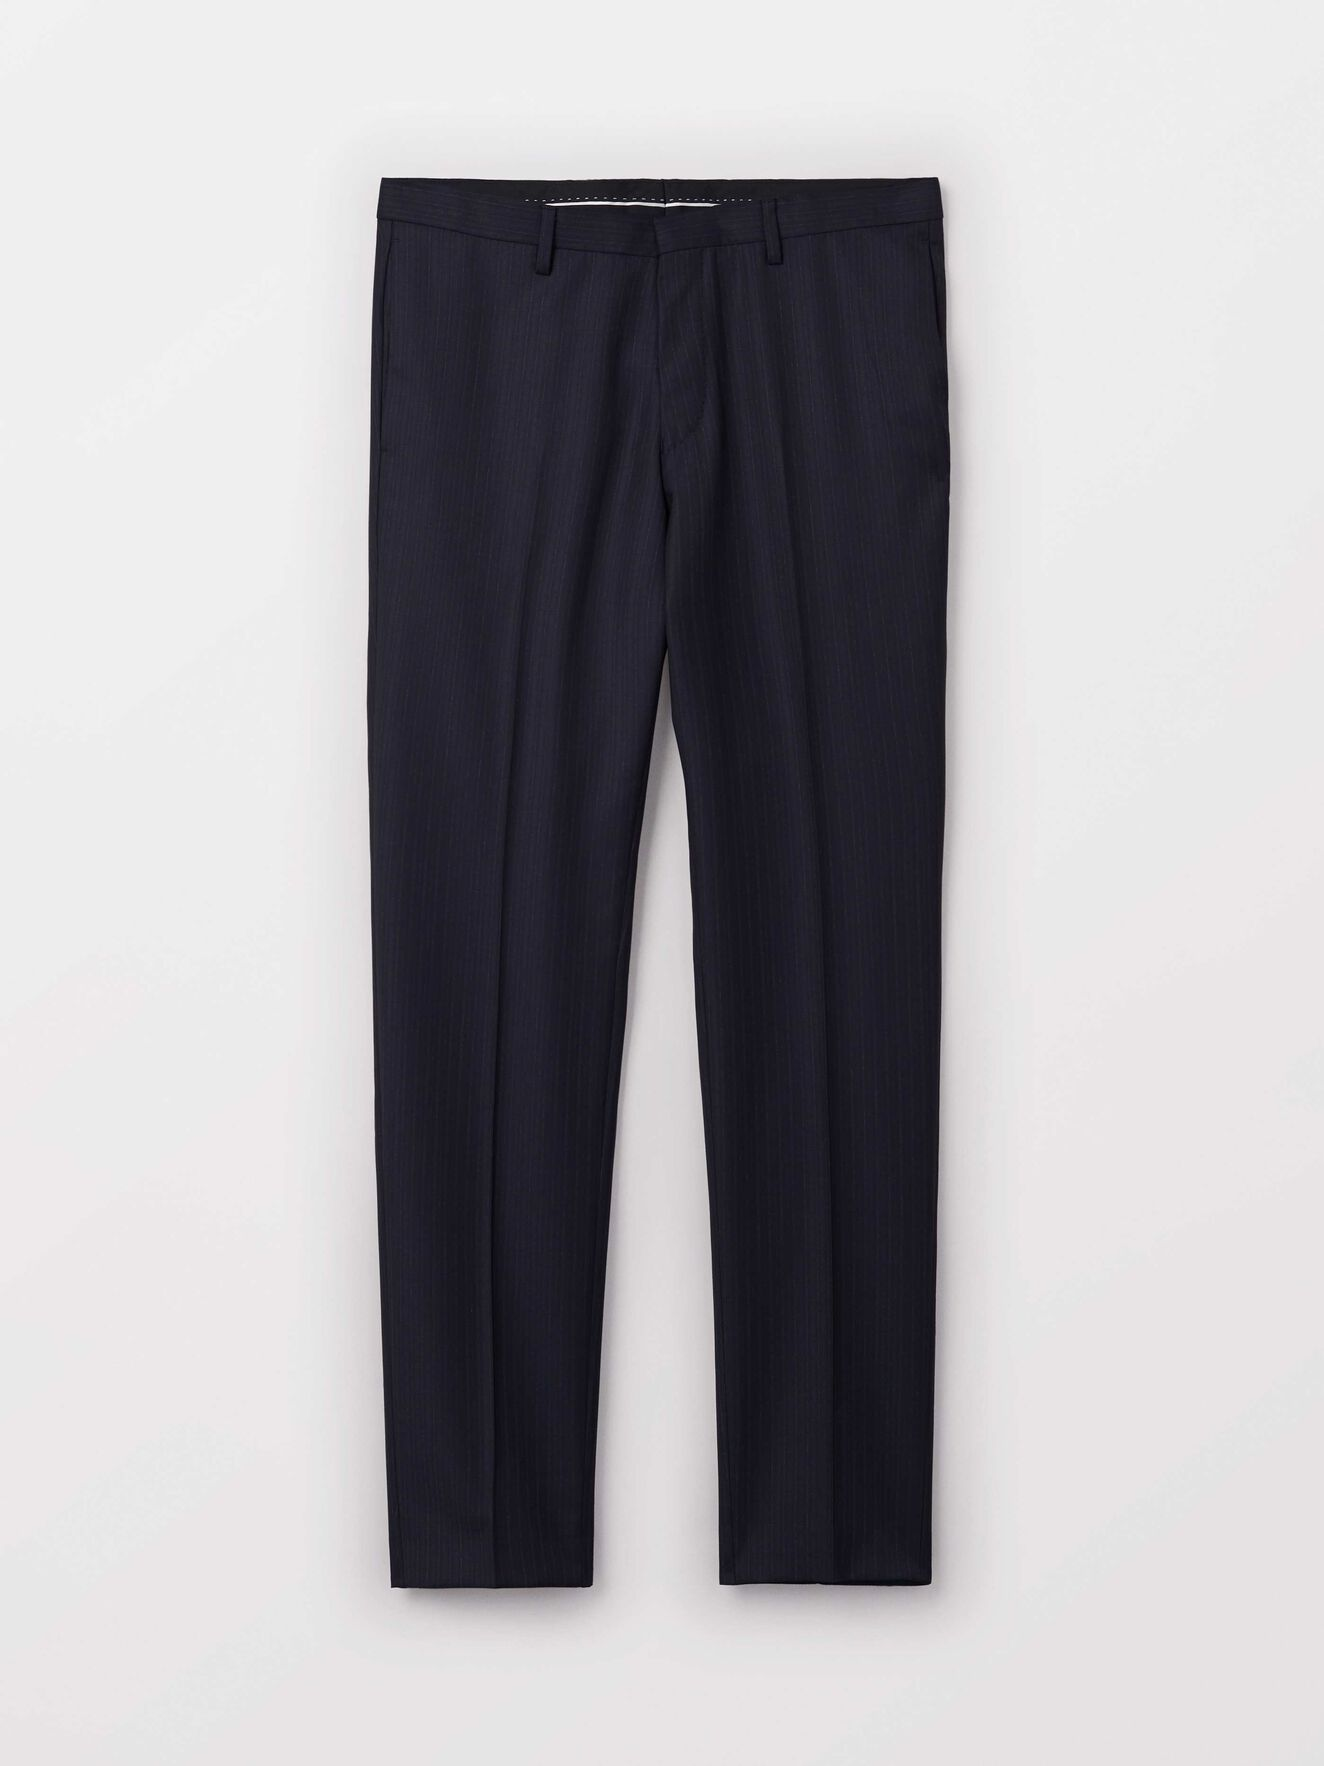 Todd Trousers in Light Ink from Tiger of Sweden